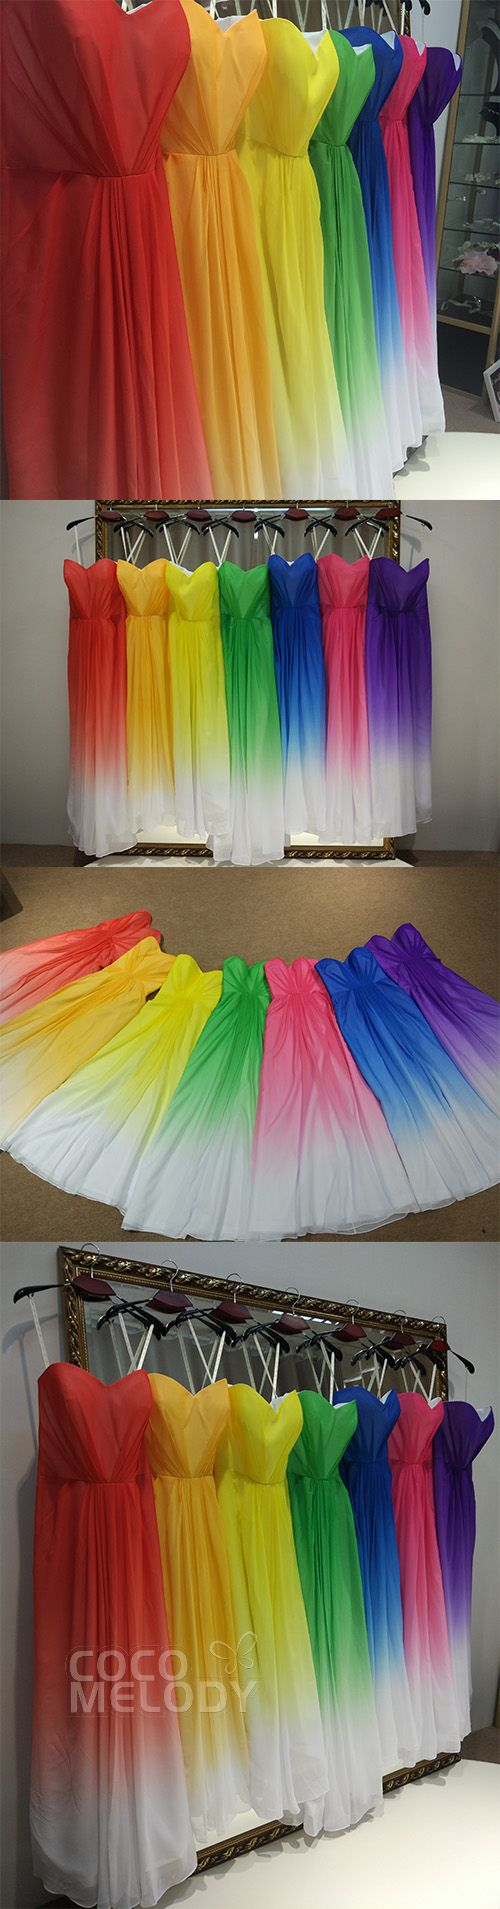 Best 25 rainbow bridesmaid dresses ideas on pinterest pastel amaizng rainbow bridesmaid dresses will you say yes to them for your girls ombrellifo Image collections